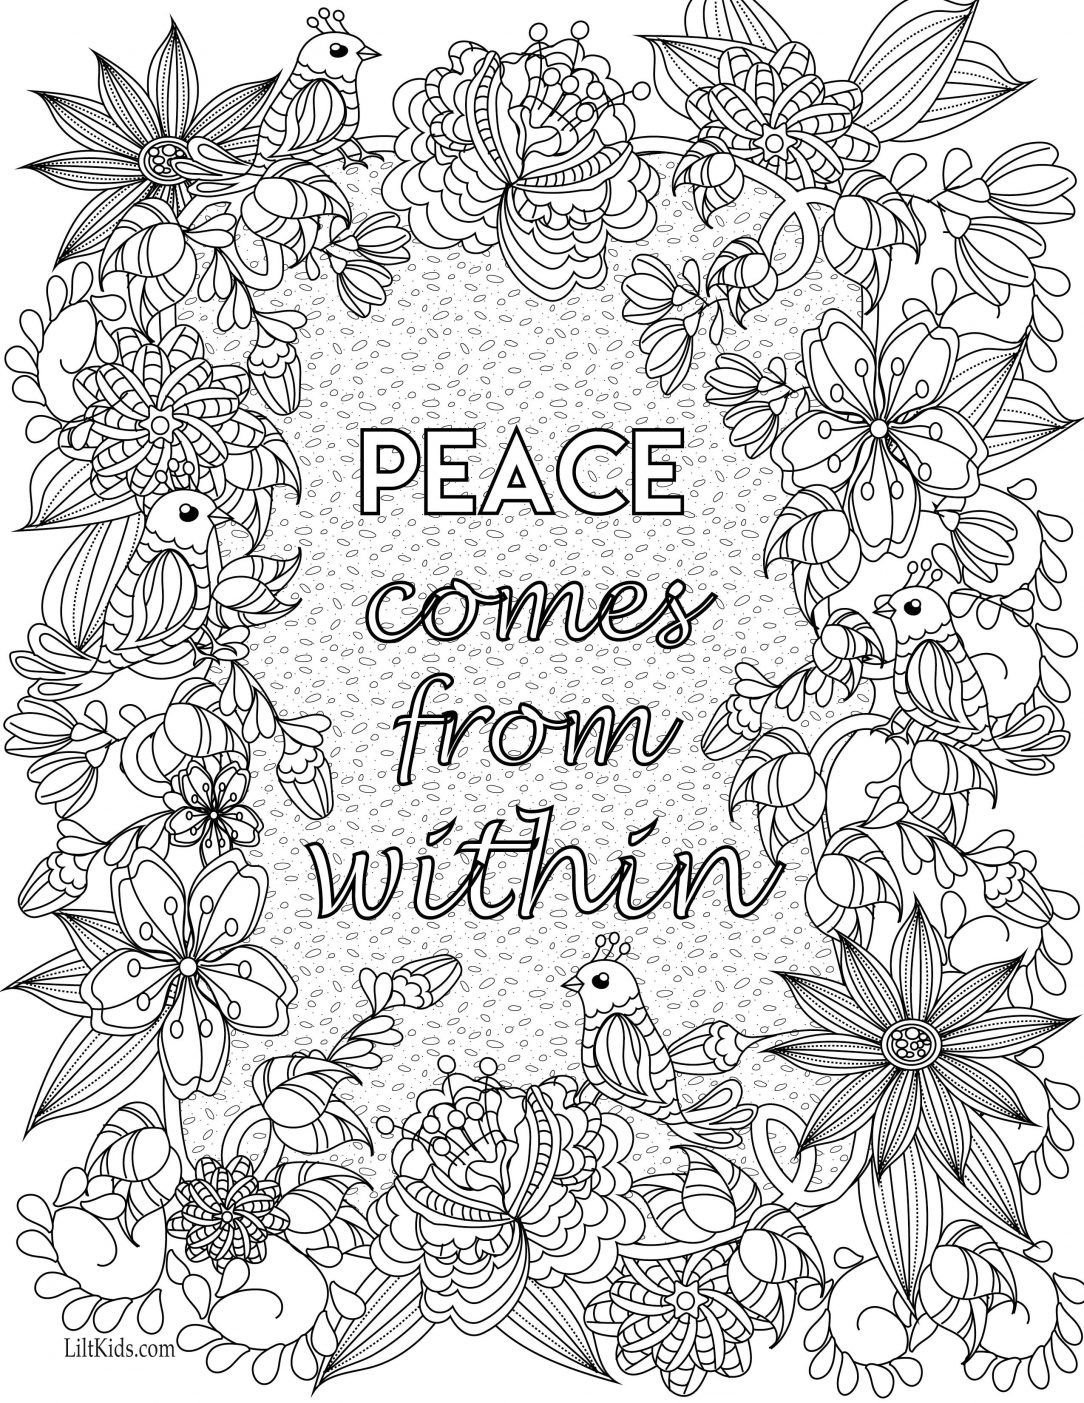 positive quote mandala coloring pages motivation mandalas adult coloring book inspiration for pages coloring positive quote mandala